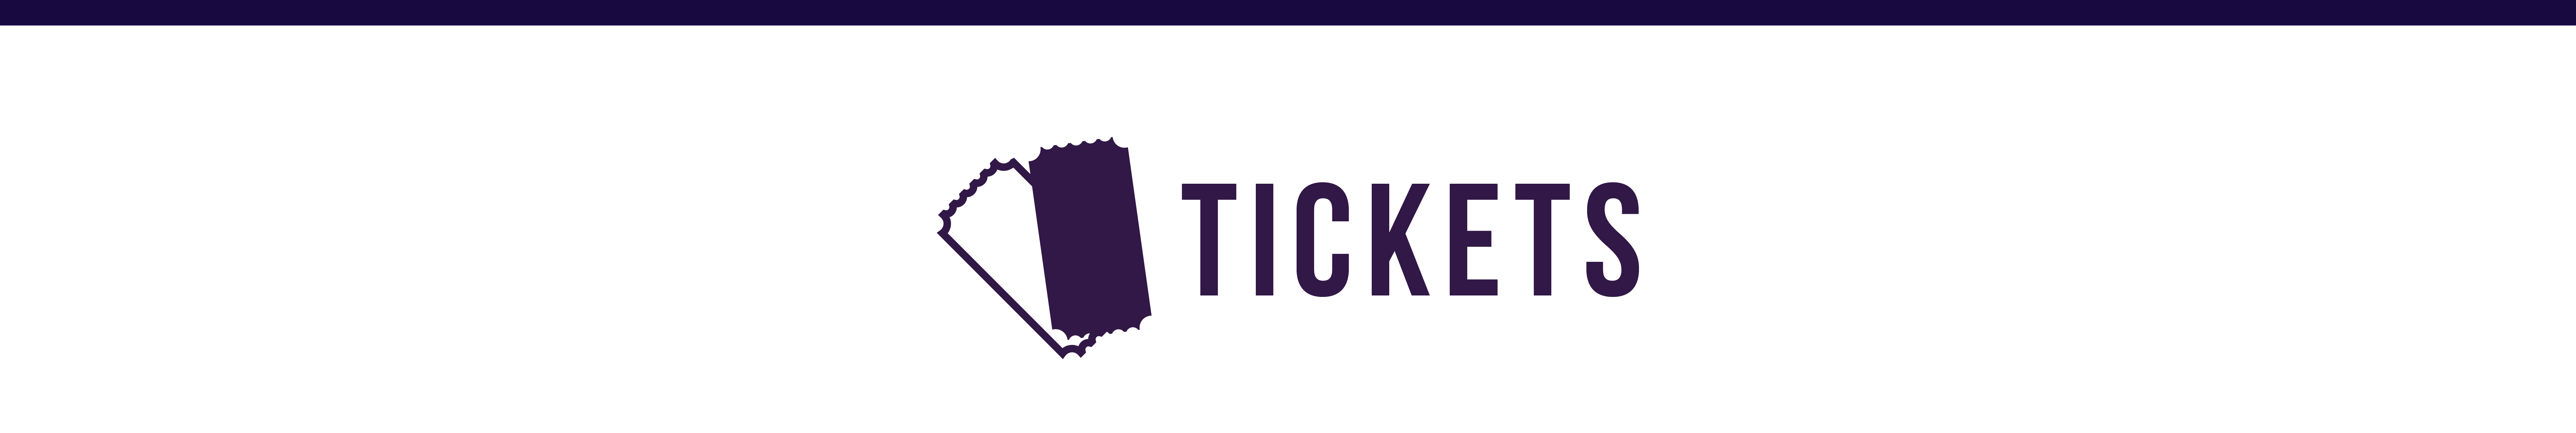 ticket-graphic-01.png